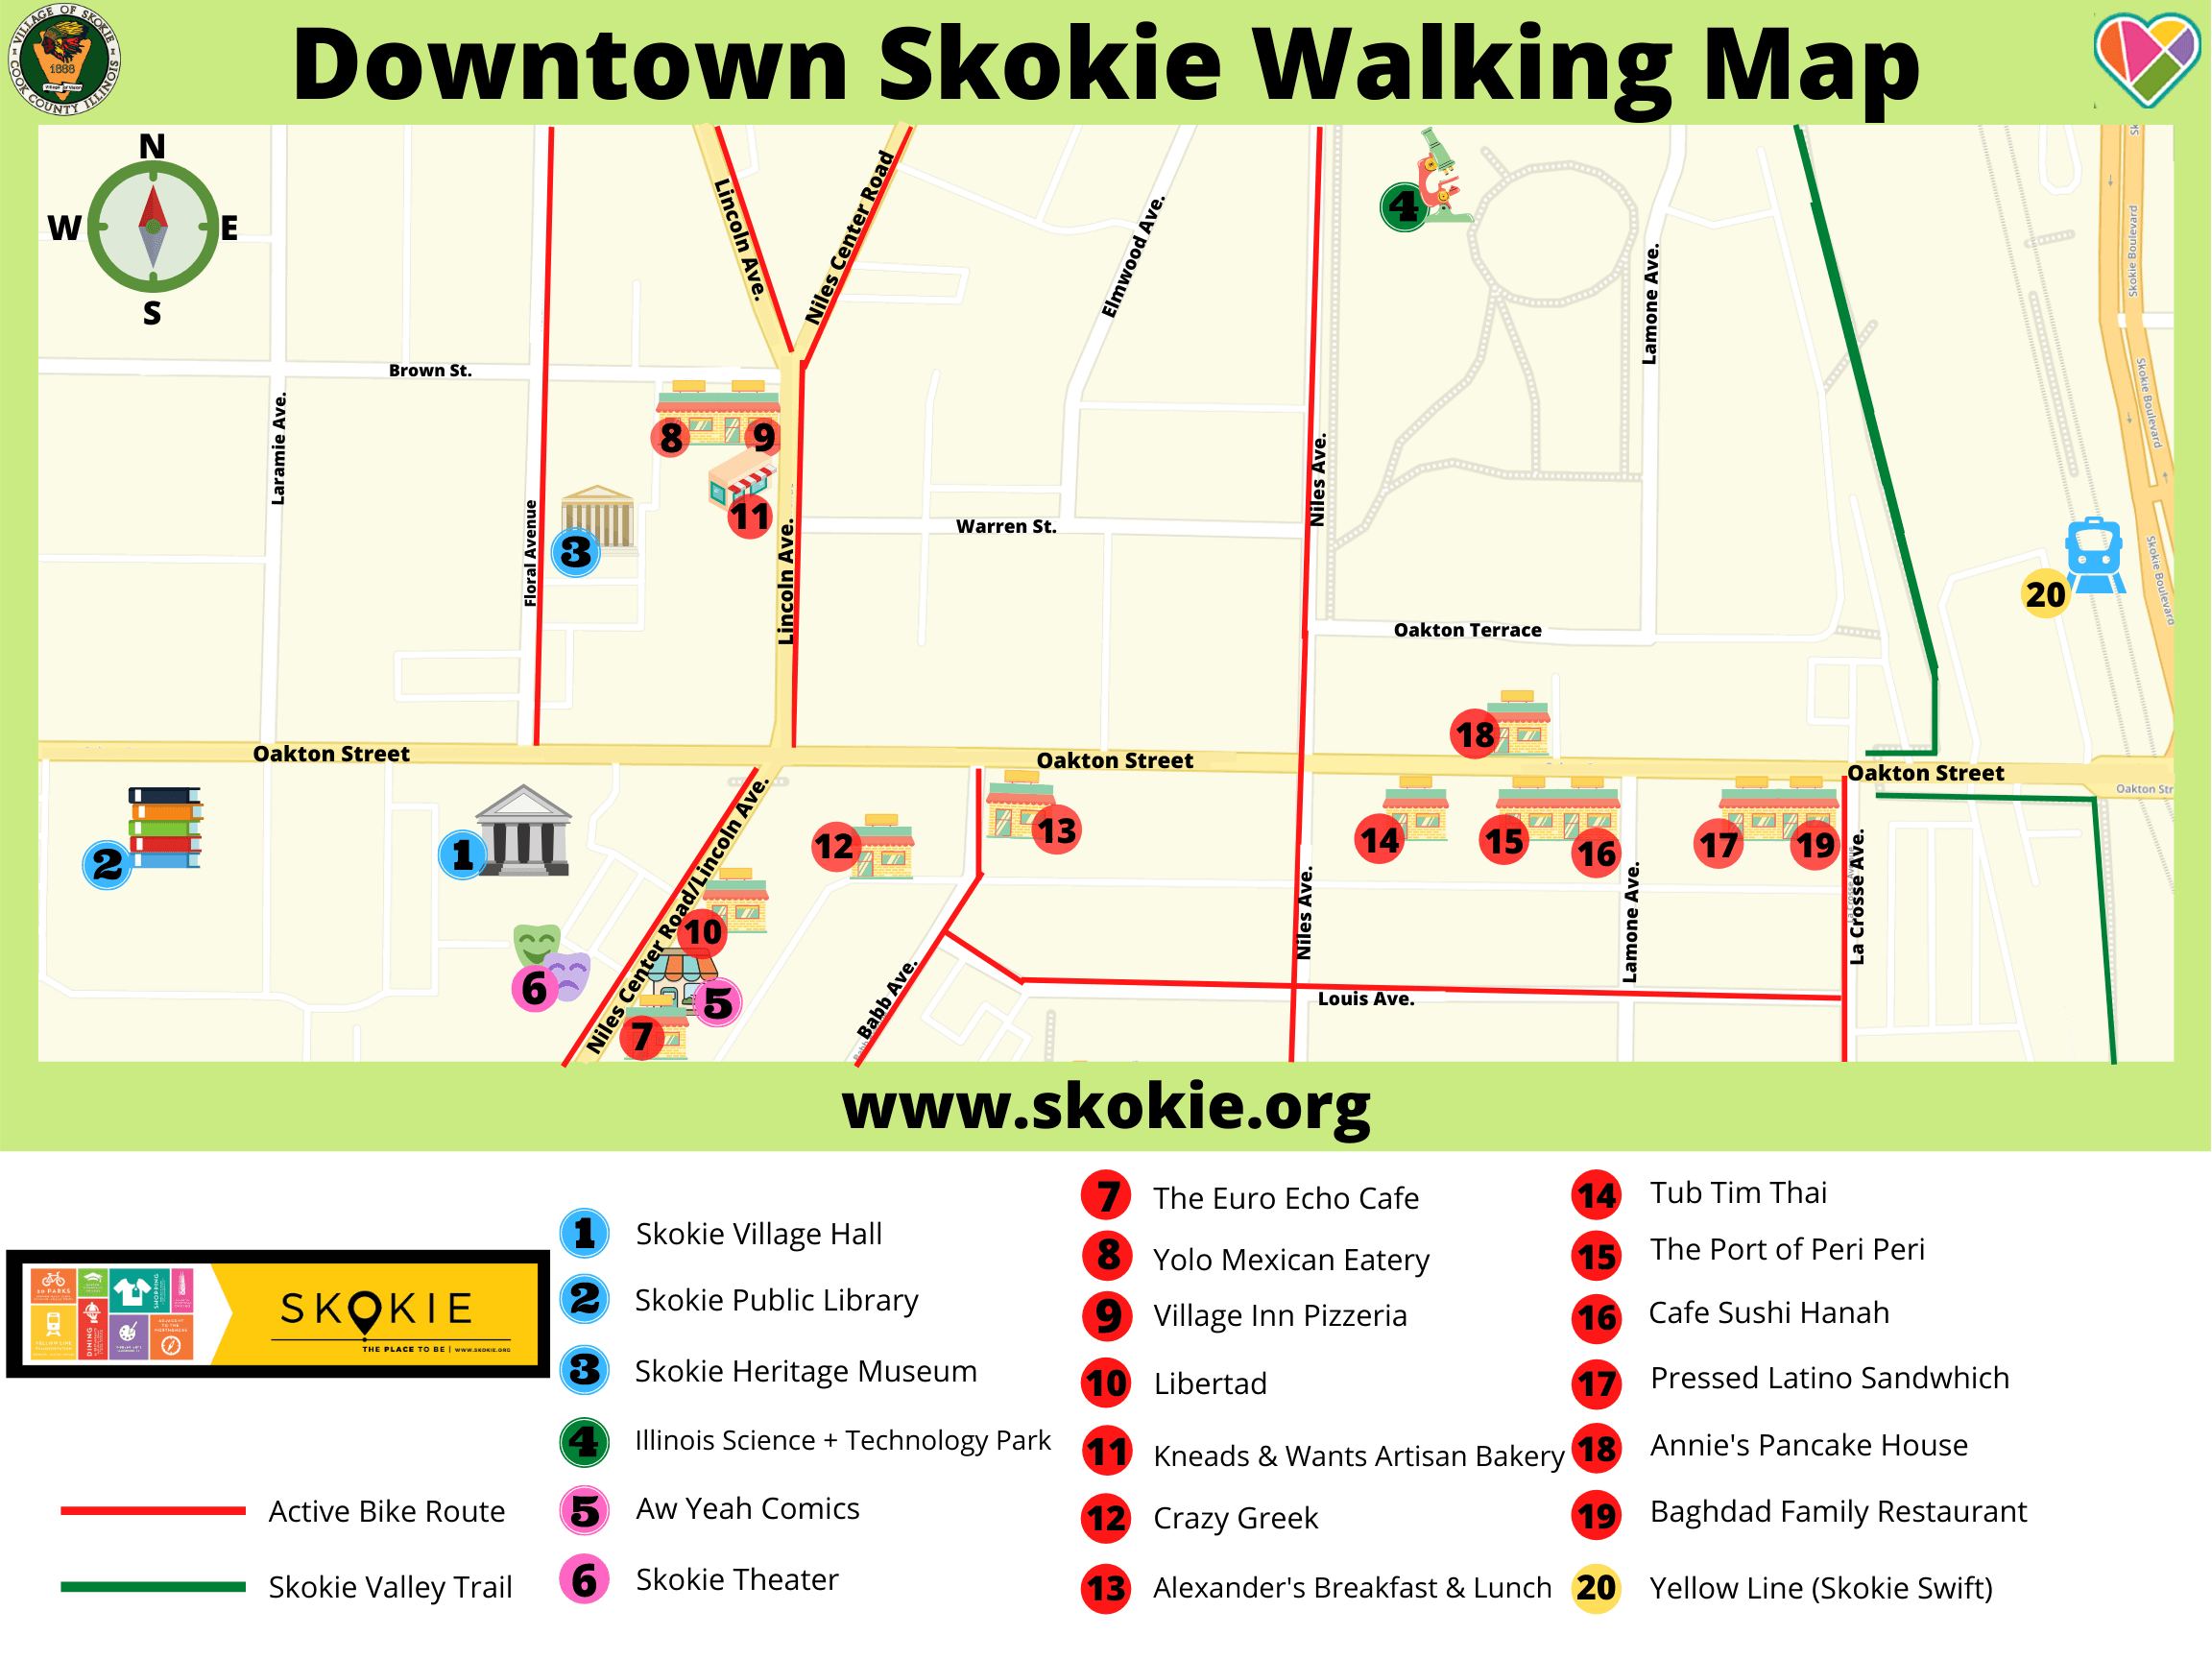 Downtown Skokie Walking Map (1)